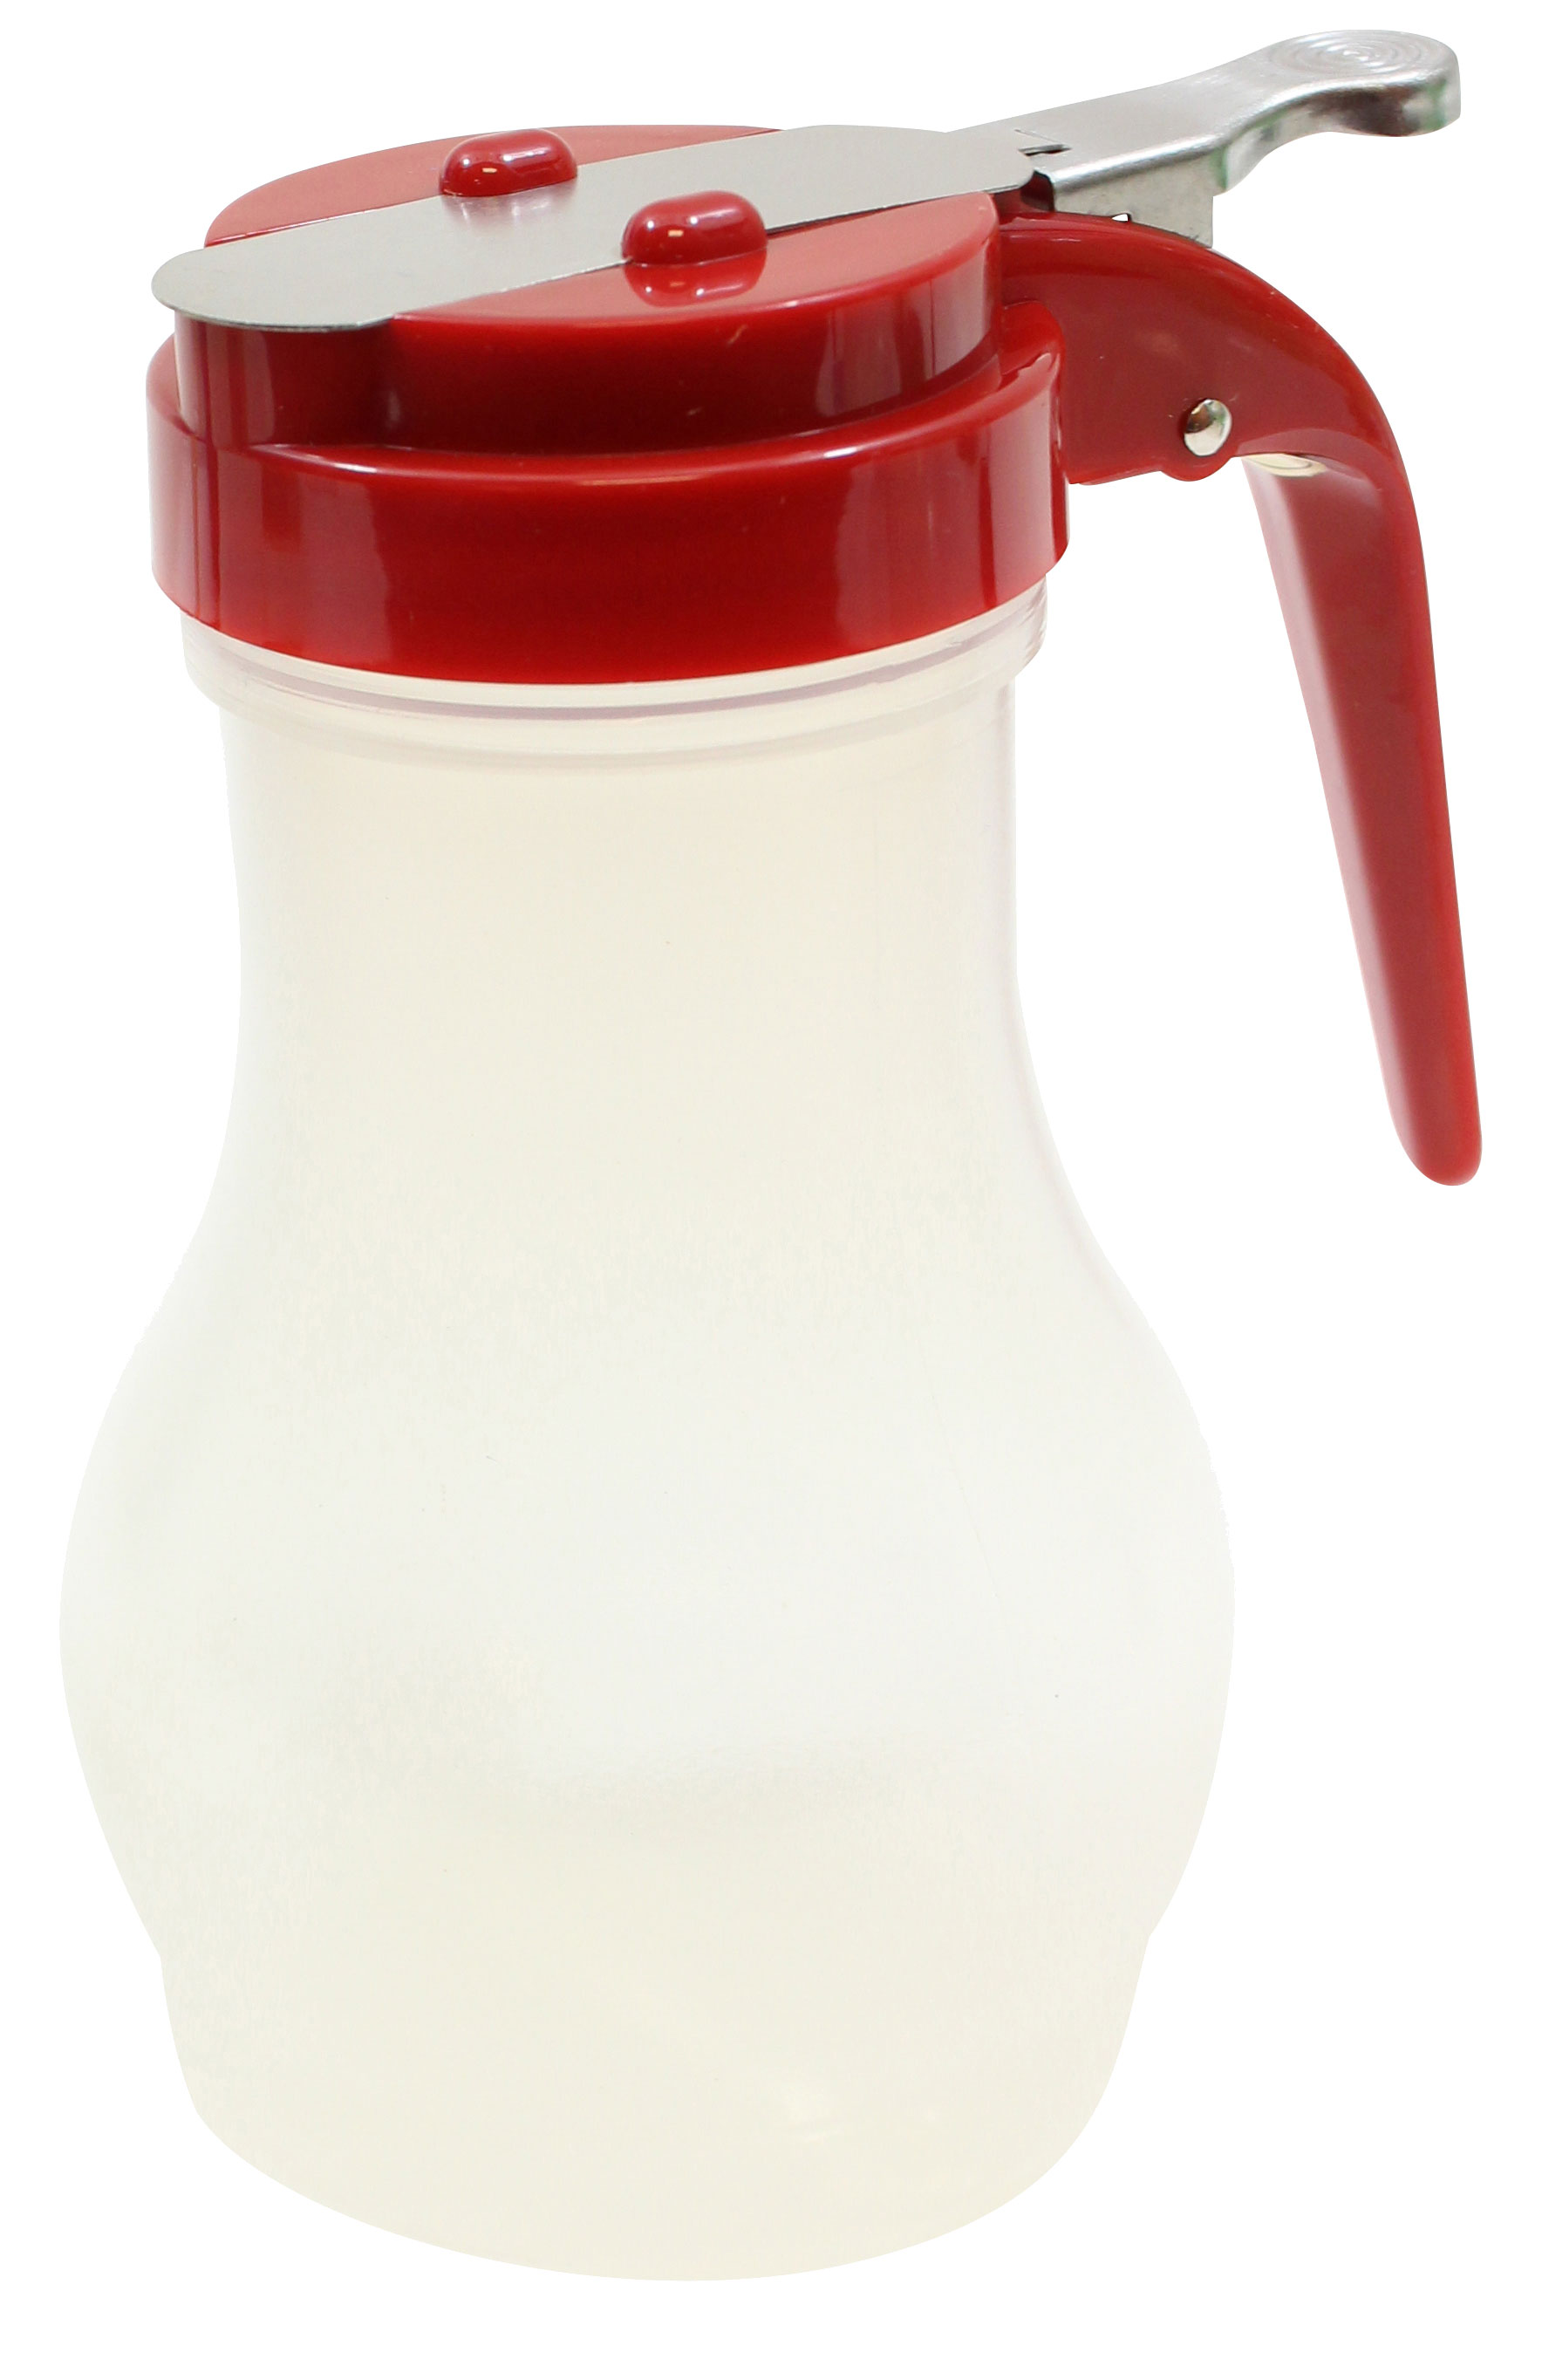 TableCraft Products PP410RE syrup pourer